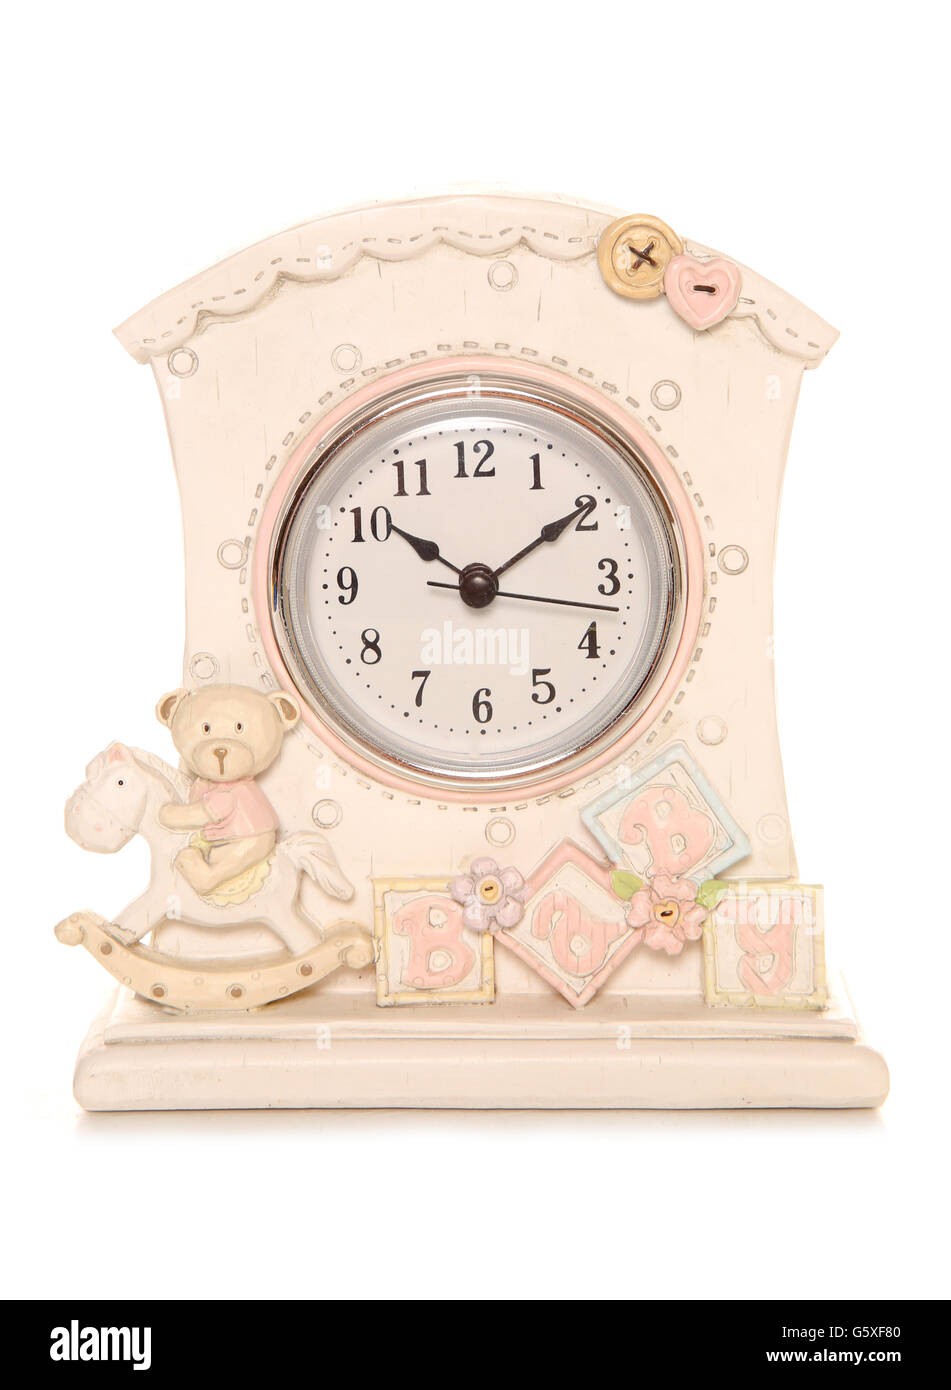 Baby clock for nursery studio cutout - Stock Image